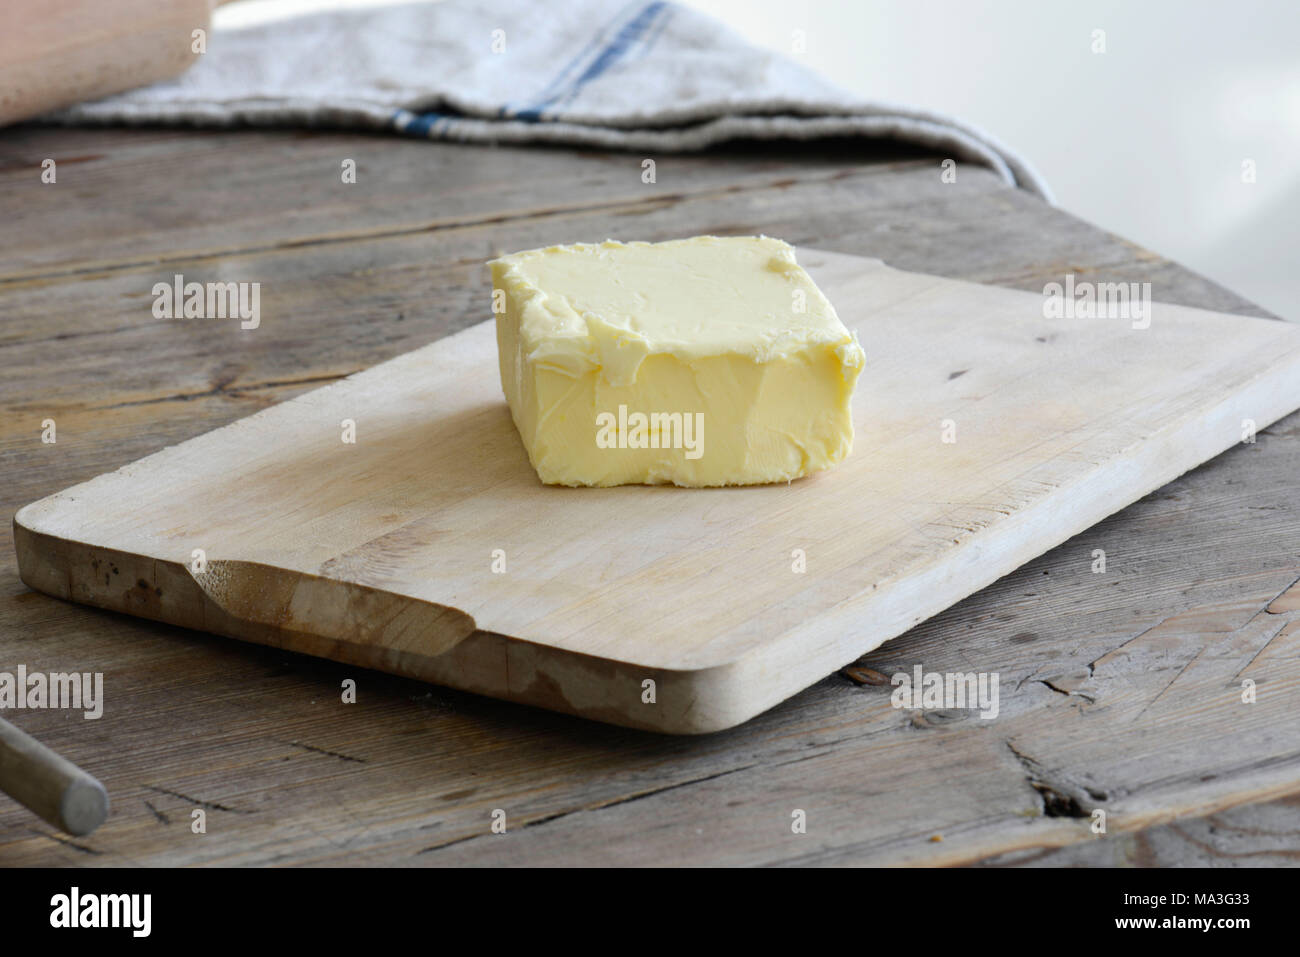 Butter, wooden board, wooden table - Stock Image